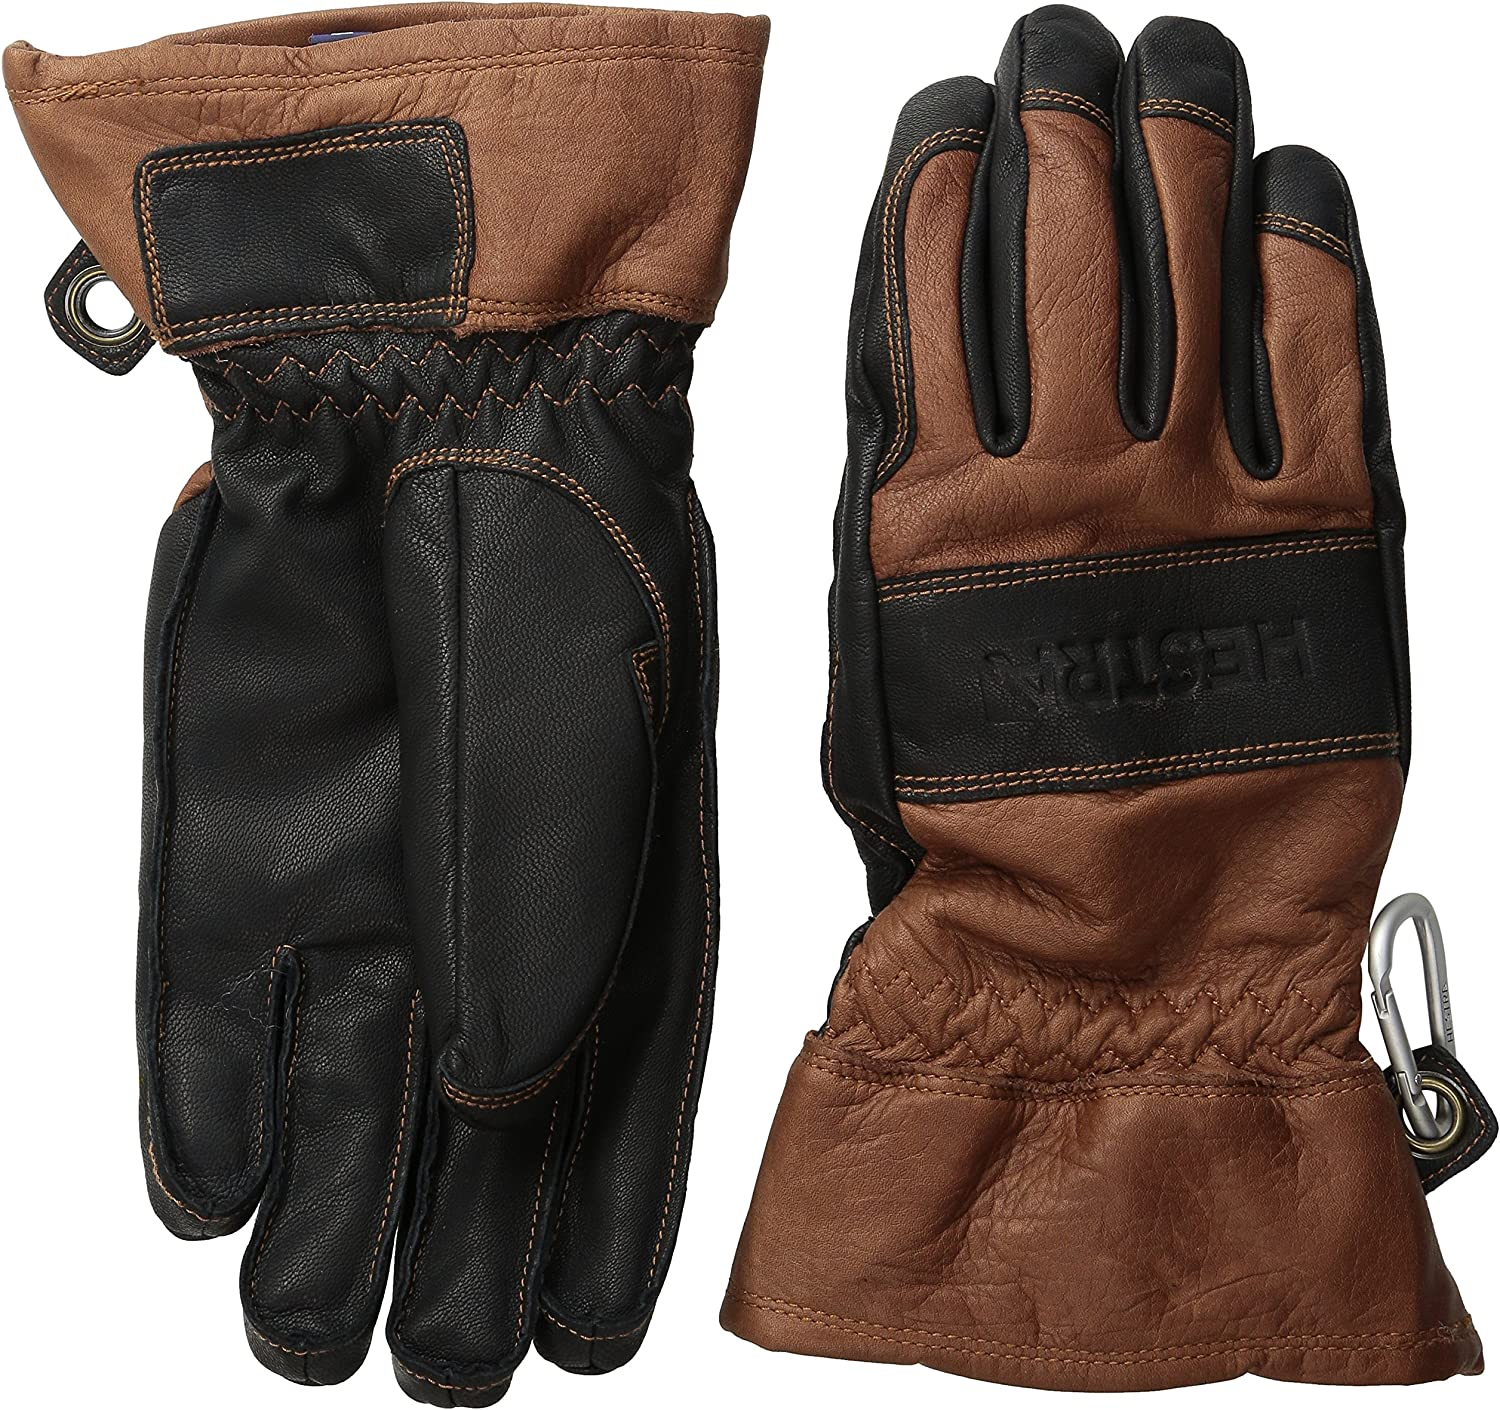 Hestra Unisex Mens and Womens Ski Gloves: Guide Leather Winter Glove with Wool Lining